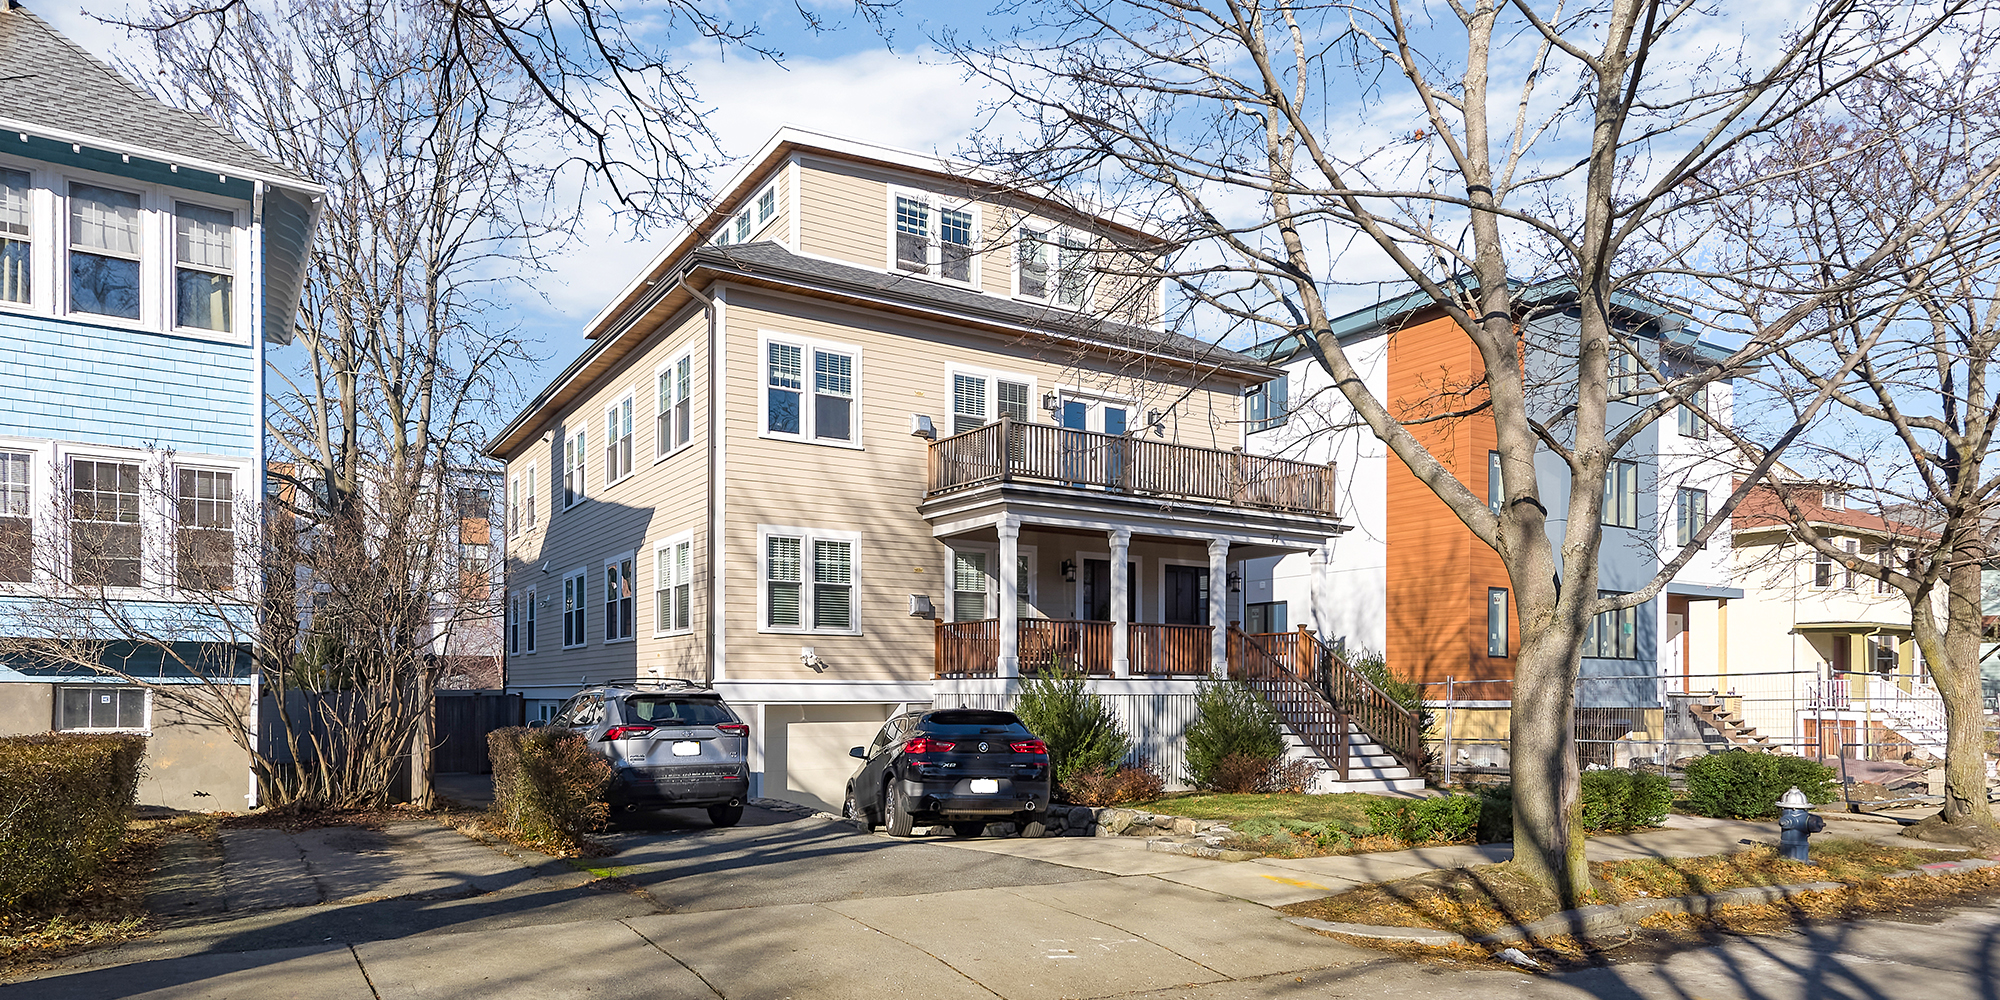 A Rare Find in Coolidge Corner - Newly Listed 3+Bedroom Condo with Garage Parking & Private, Fenced Yard